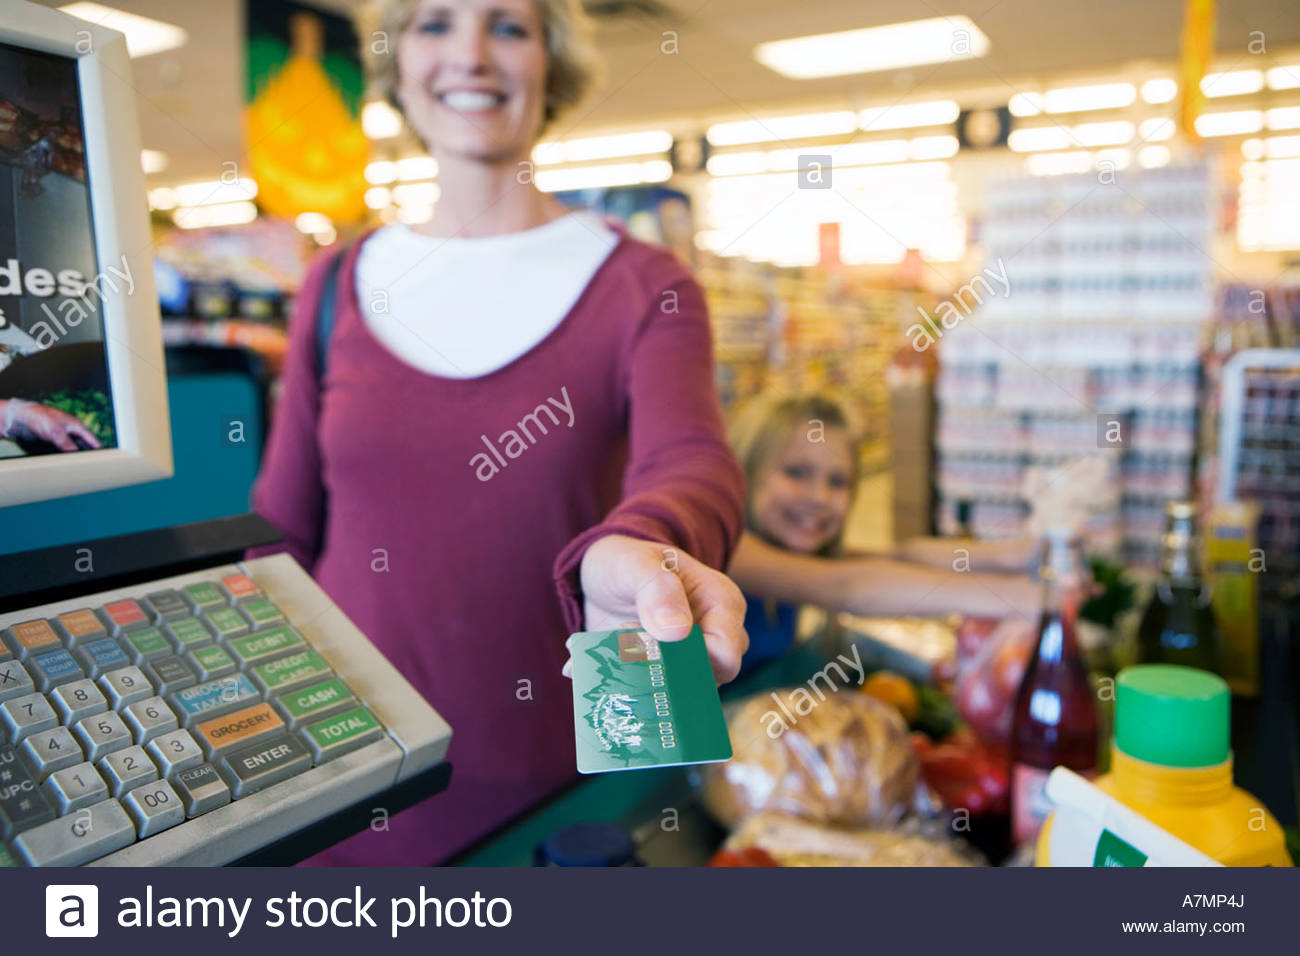 Girl 7 9 placing items on checkout conveyor belt in supermarket mother paying with credit card smiling - Stock Image